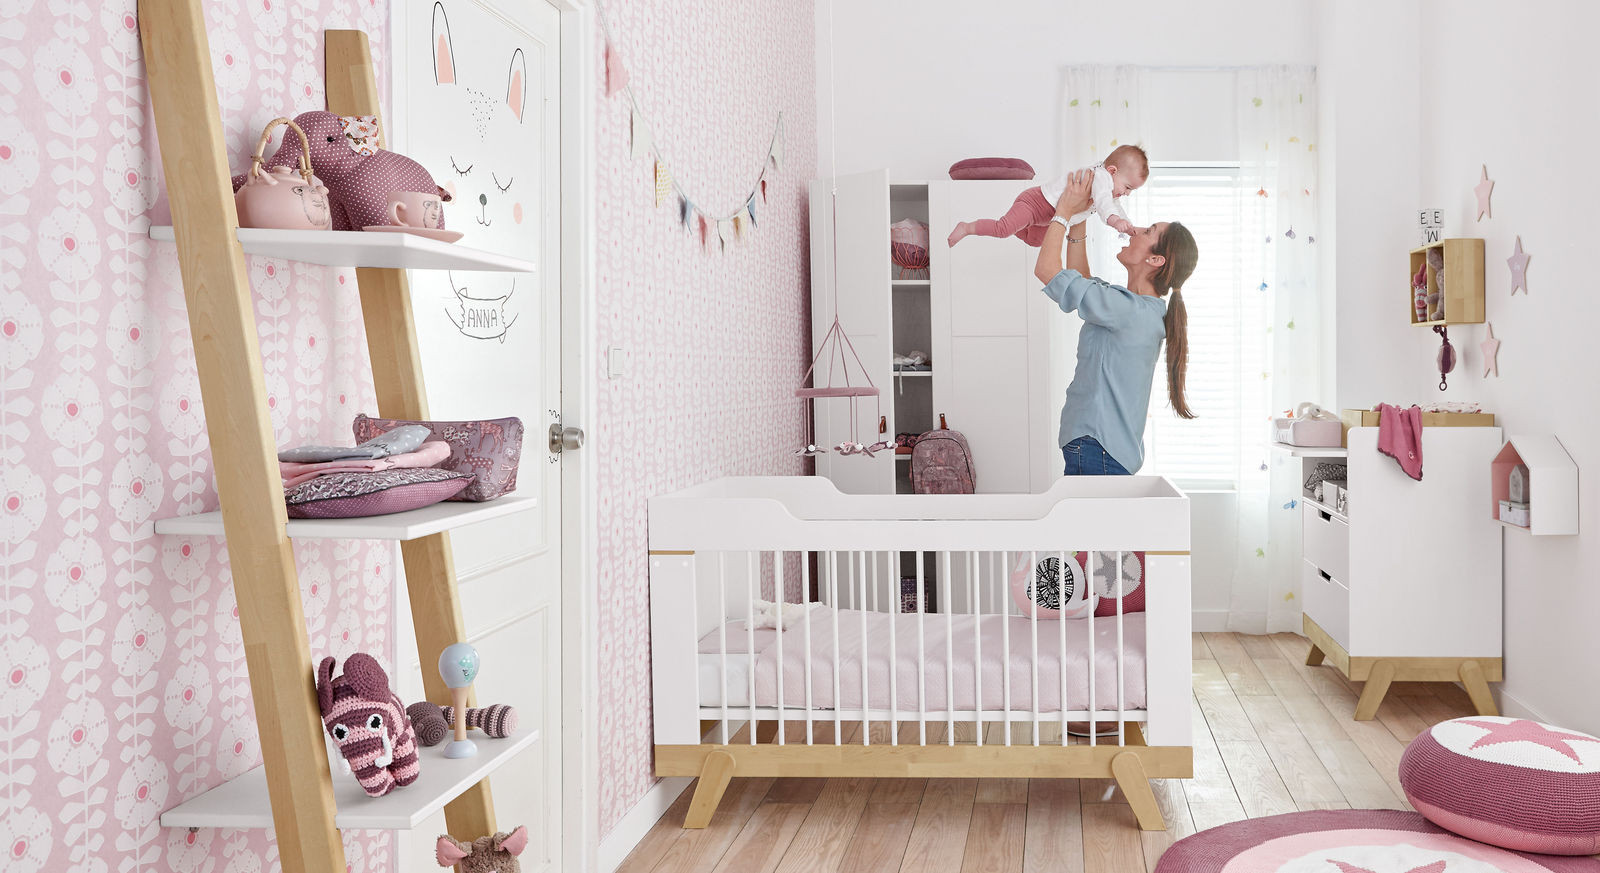 mitwachsendes babyzimmer von lifetime aus massiver birke monina. Black Bedroom Furniture Sets. Home Design Ideas